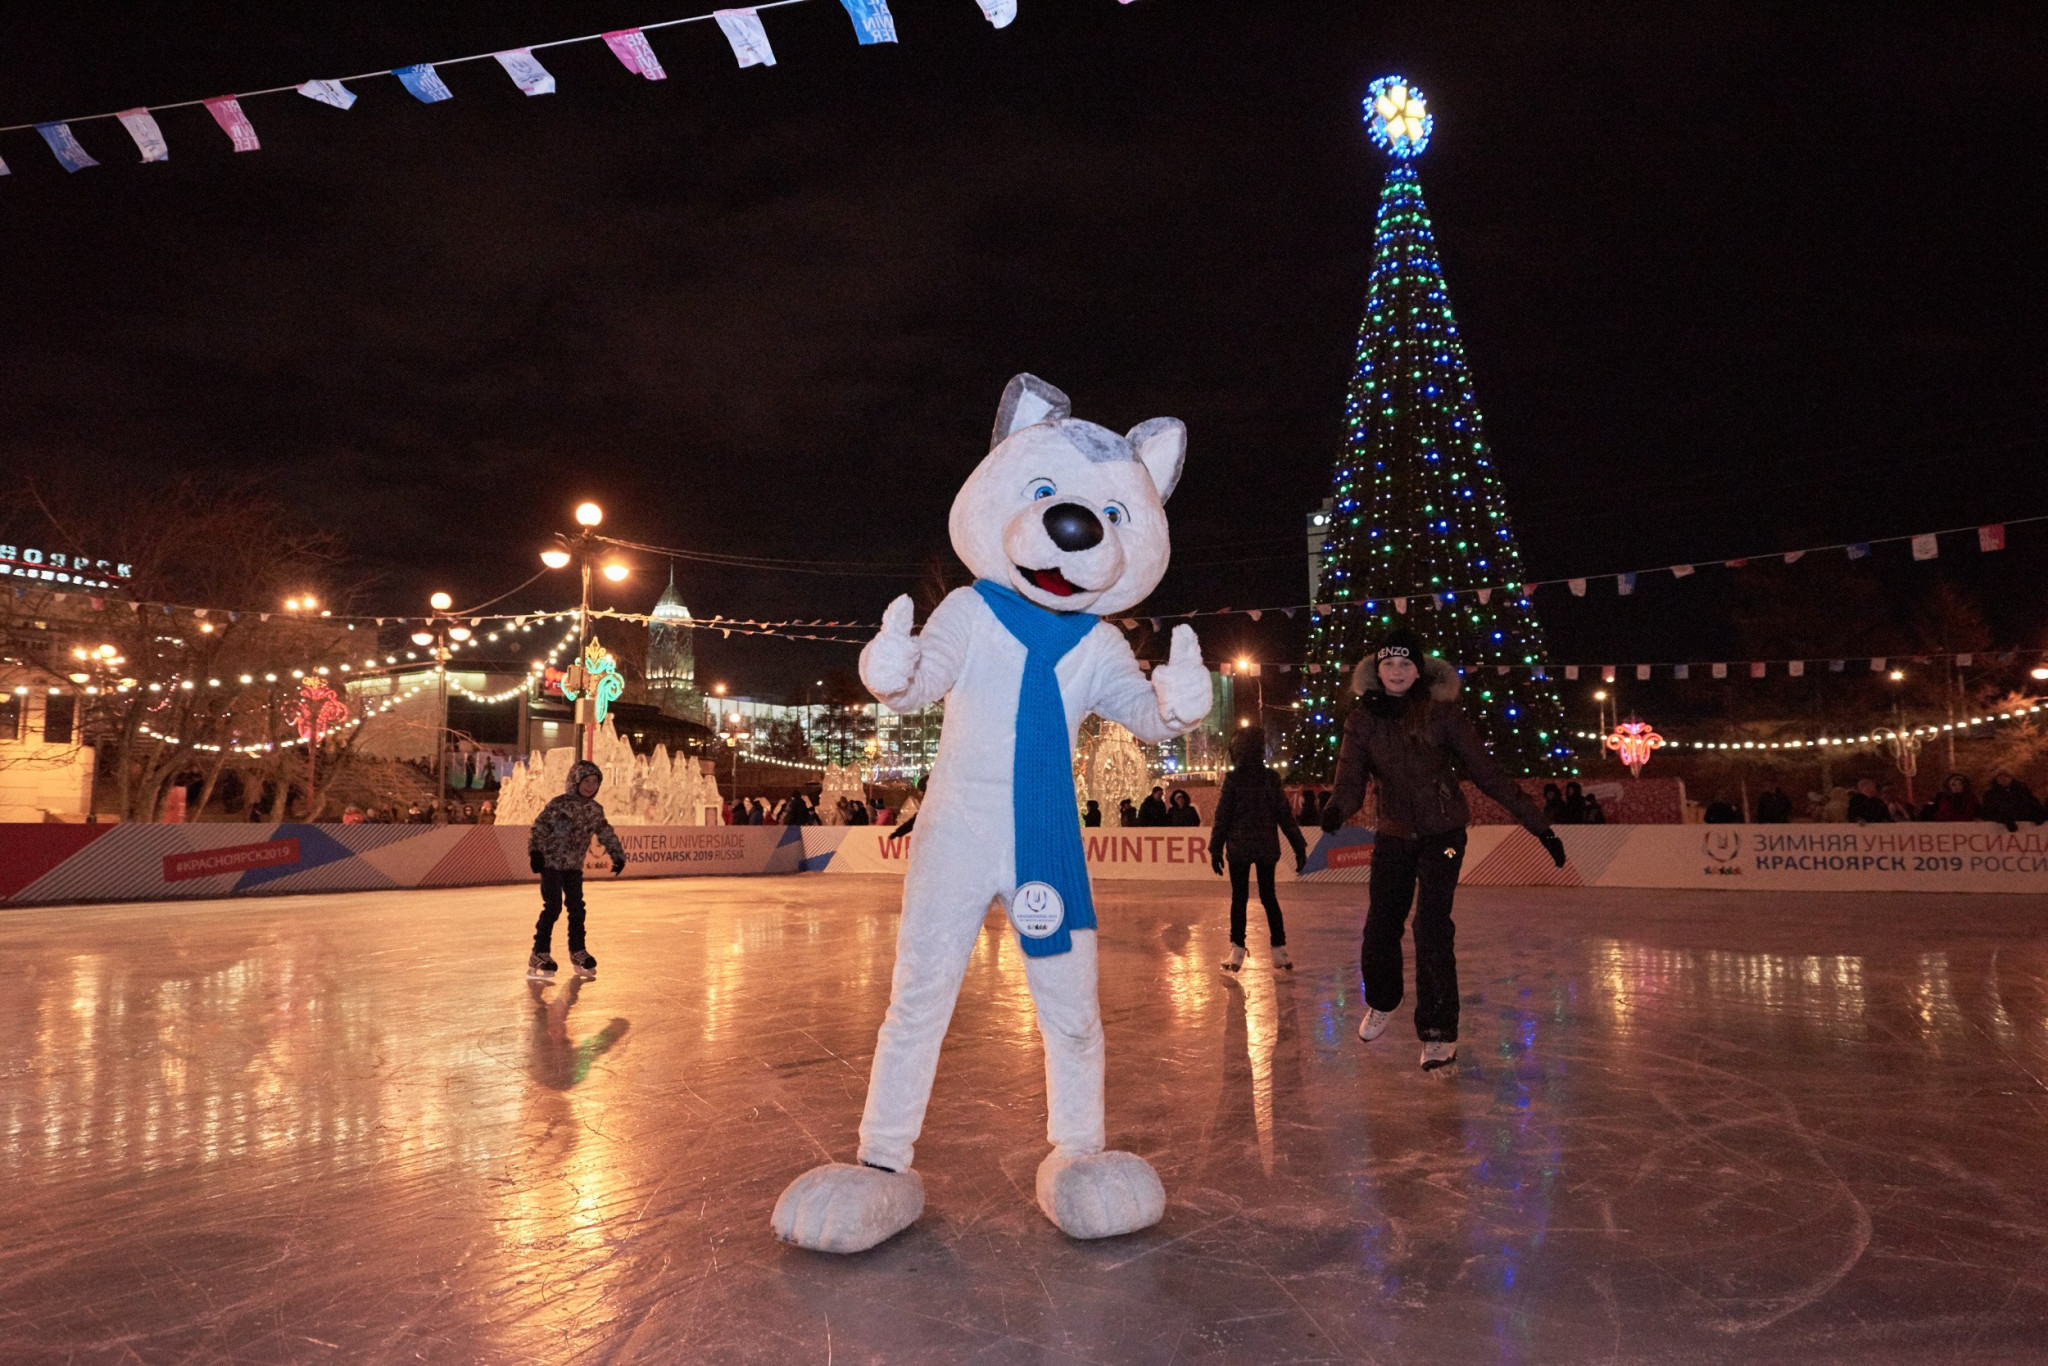 Krasnoyarsk New Year celebrations take place on Universiade 2019 site